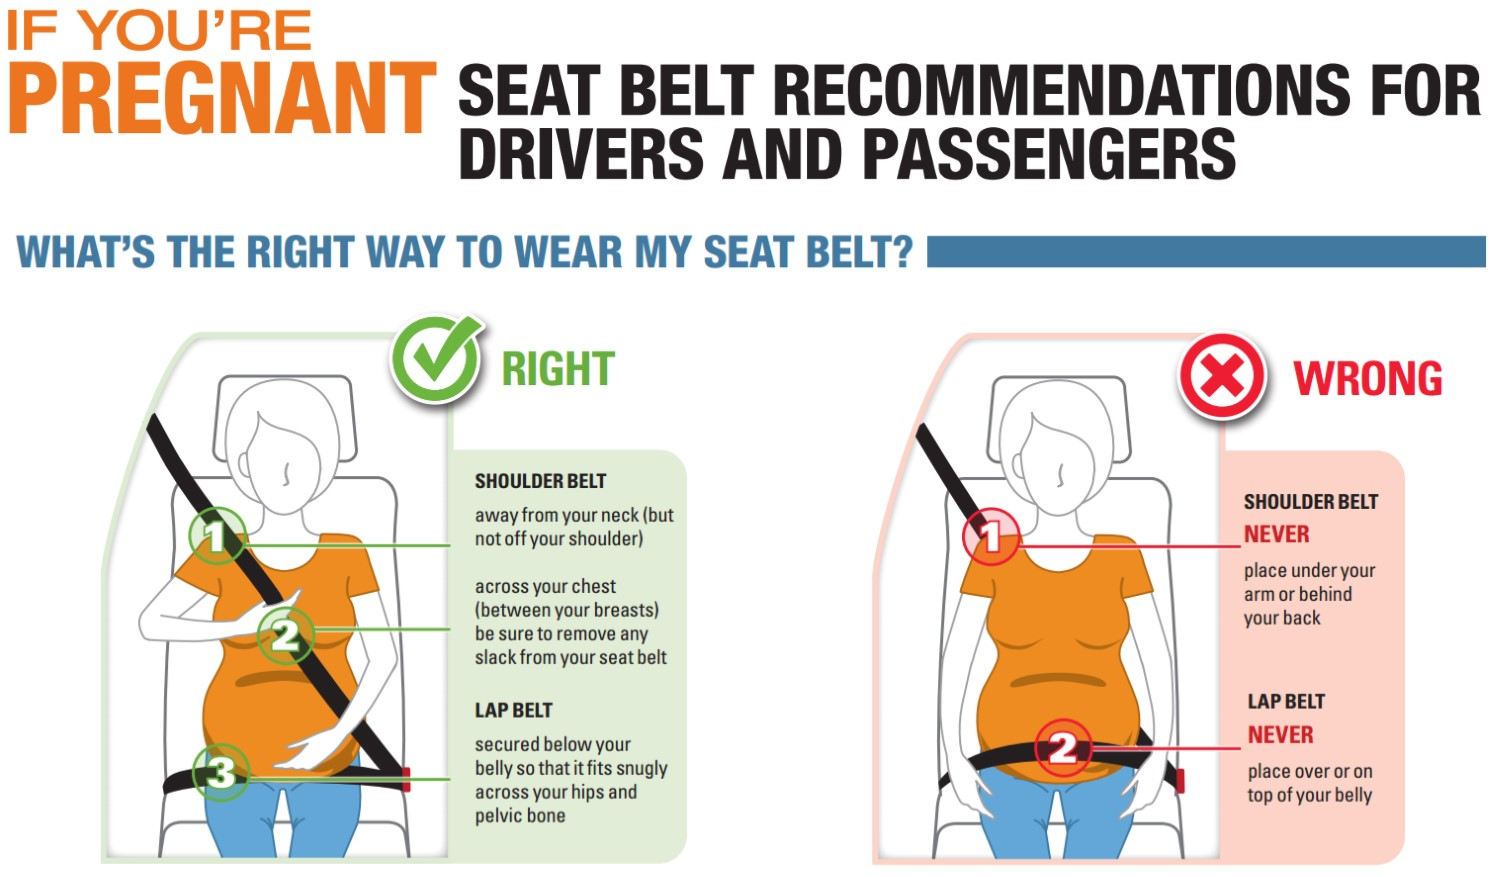 Pregnancy and seat belts